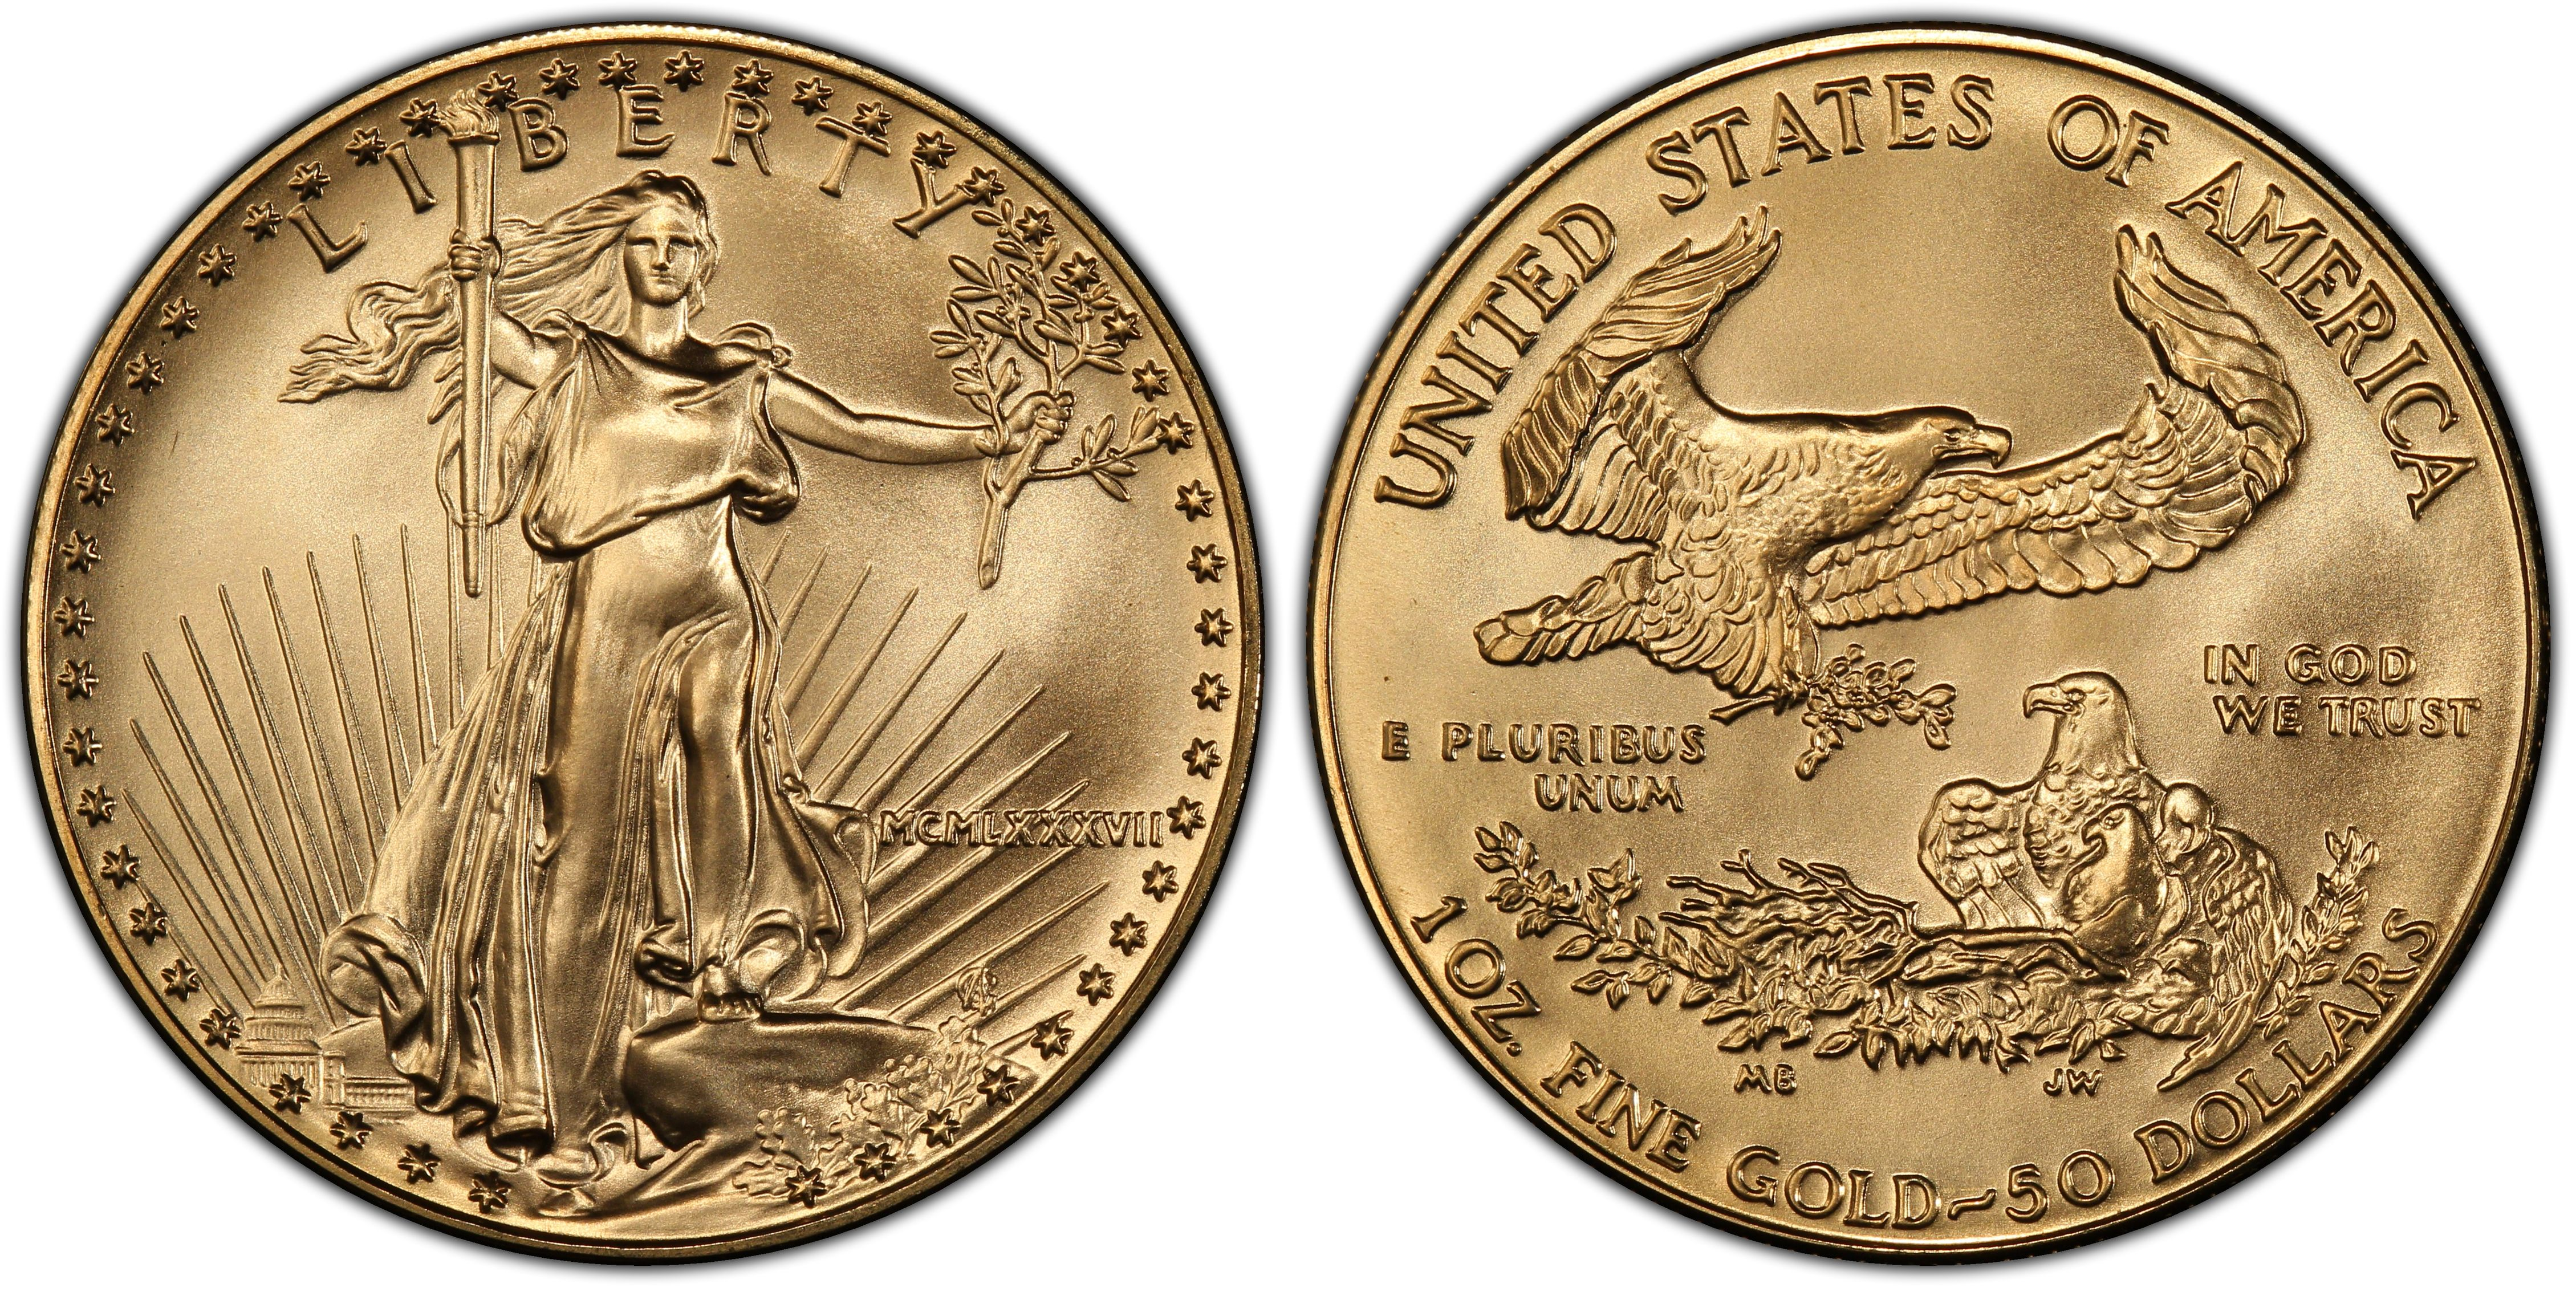 1987 One Ounce American Gold Eagle 1 Oz 50 Mcmlxvii